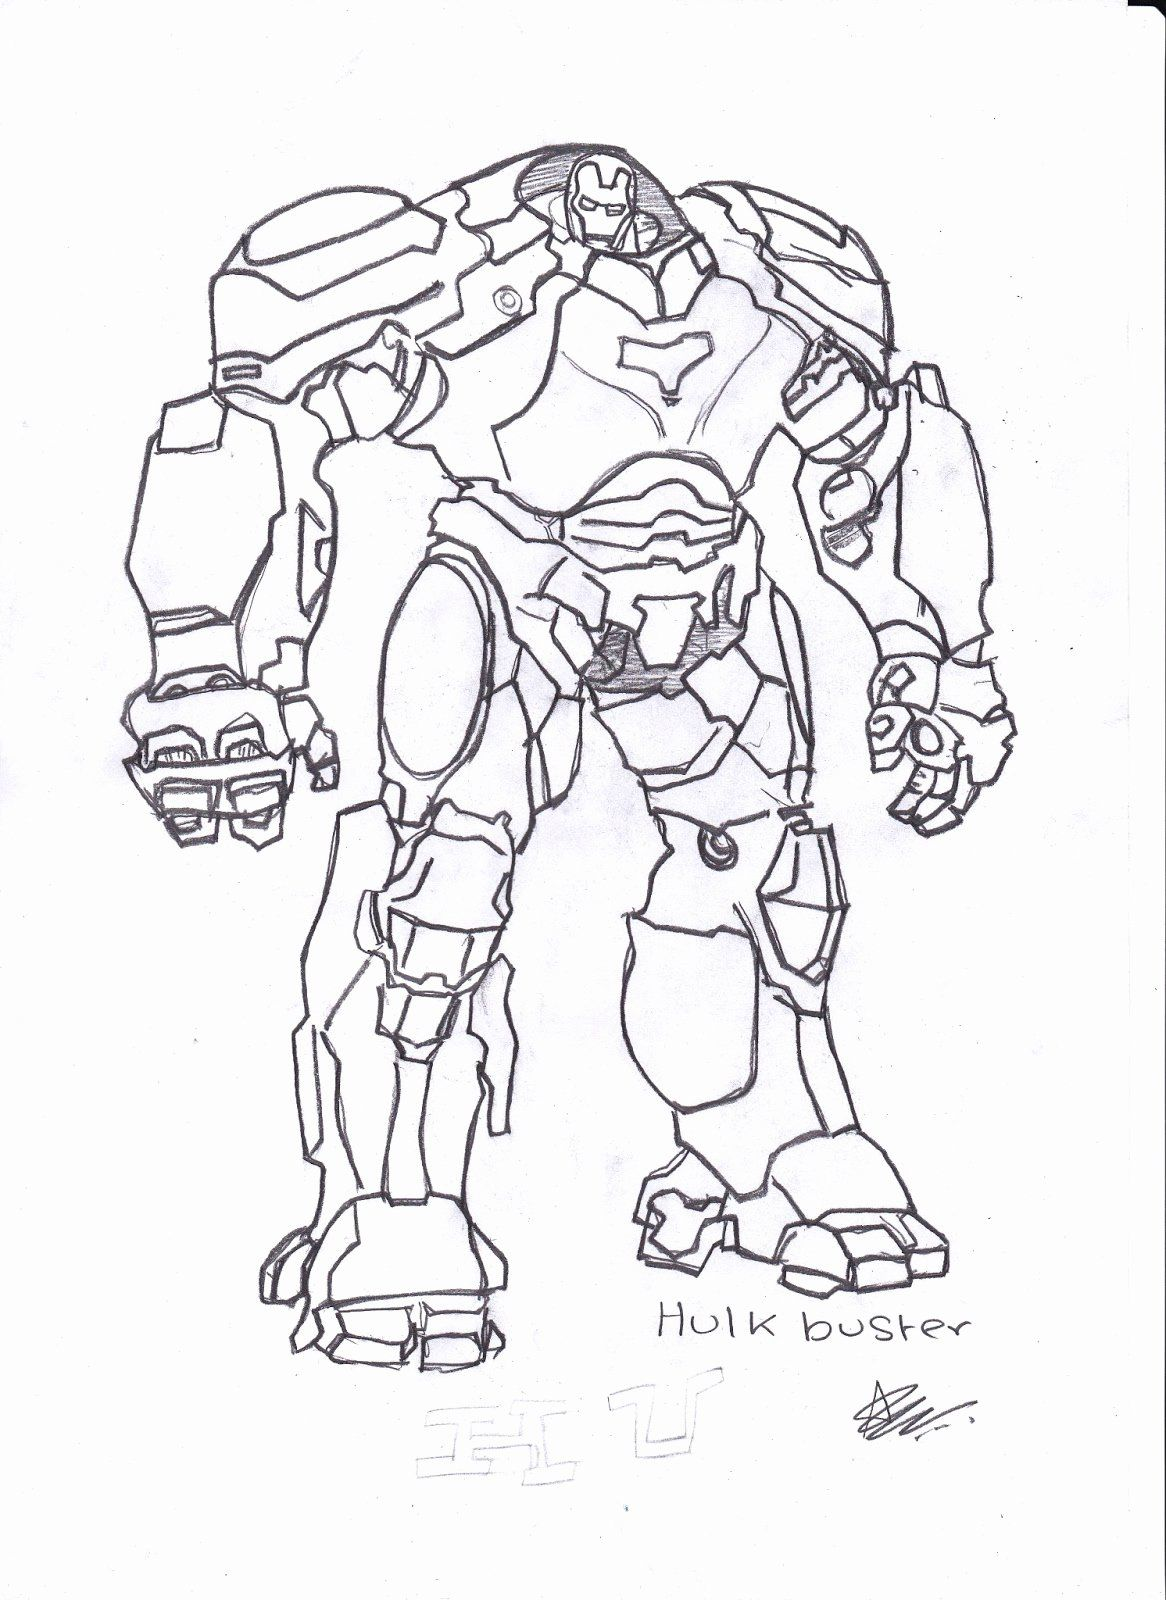 Hulk Buster Coloring Page Elegant Akshay S Blog Sketches Coloring Pages Hulkbuster Ninjago Coloring Pages